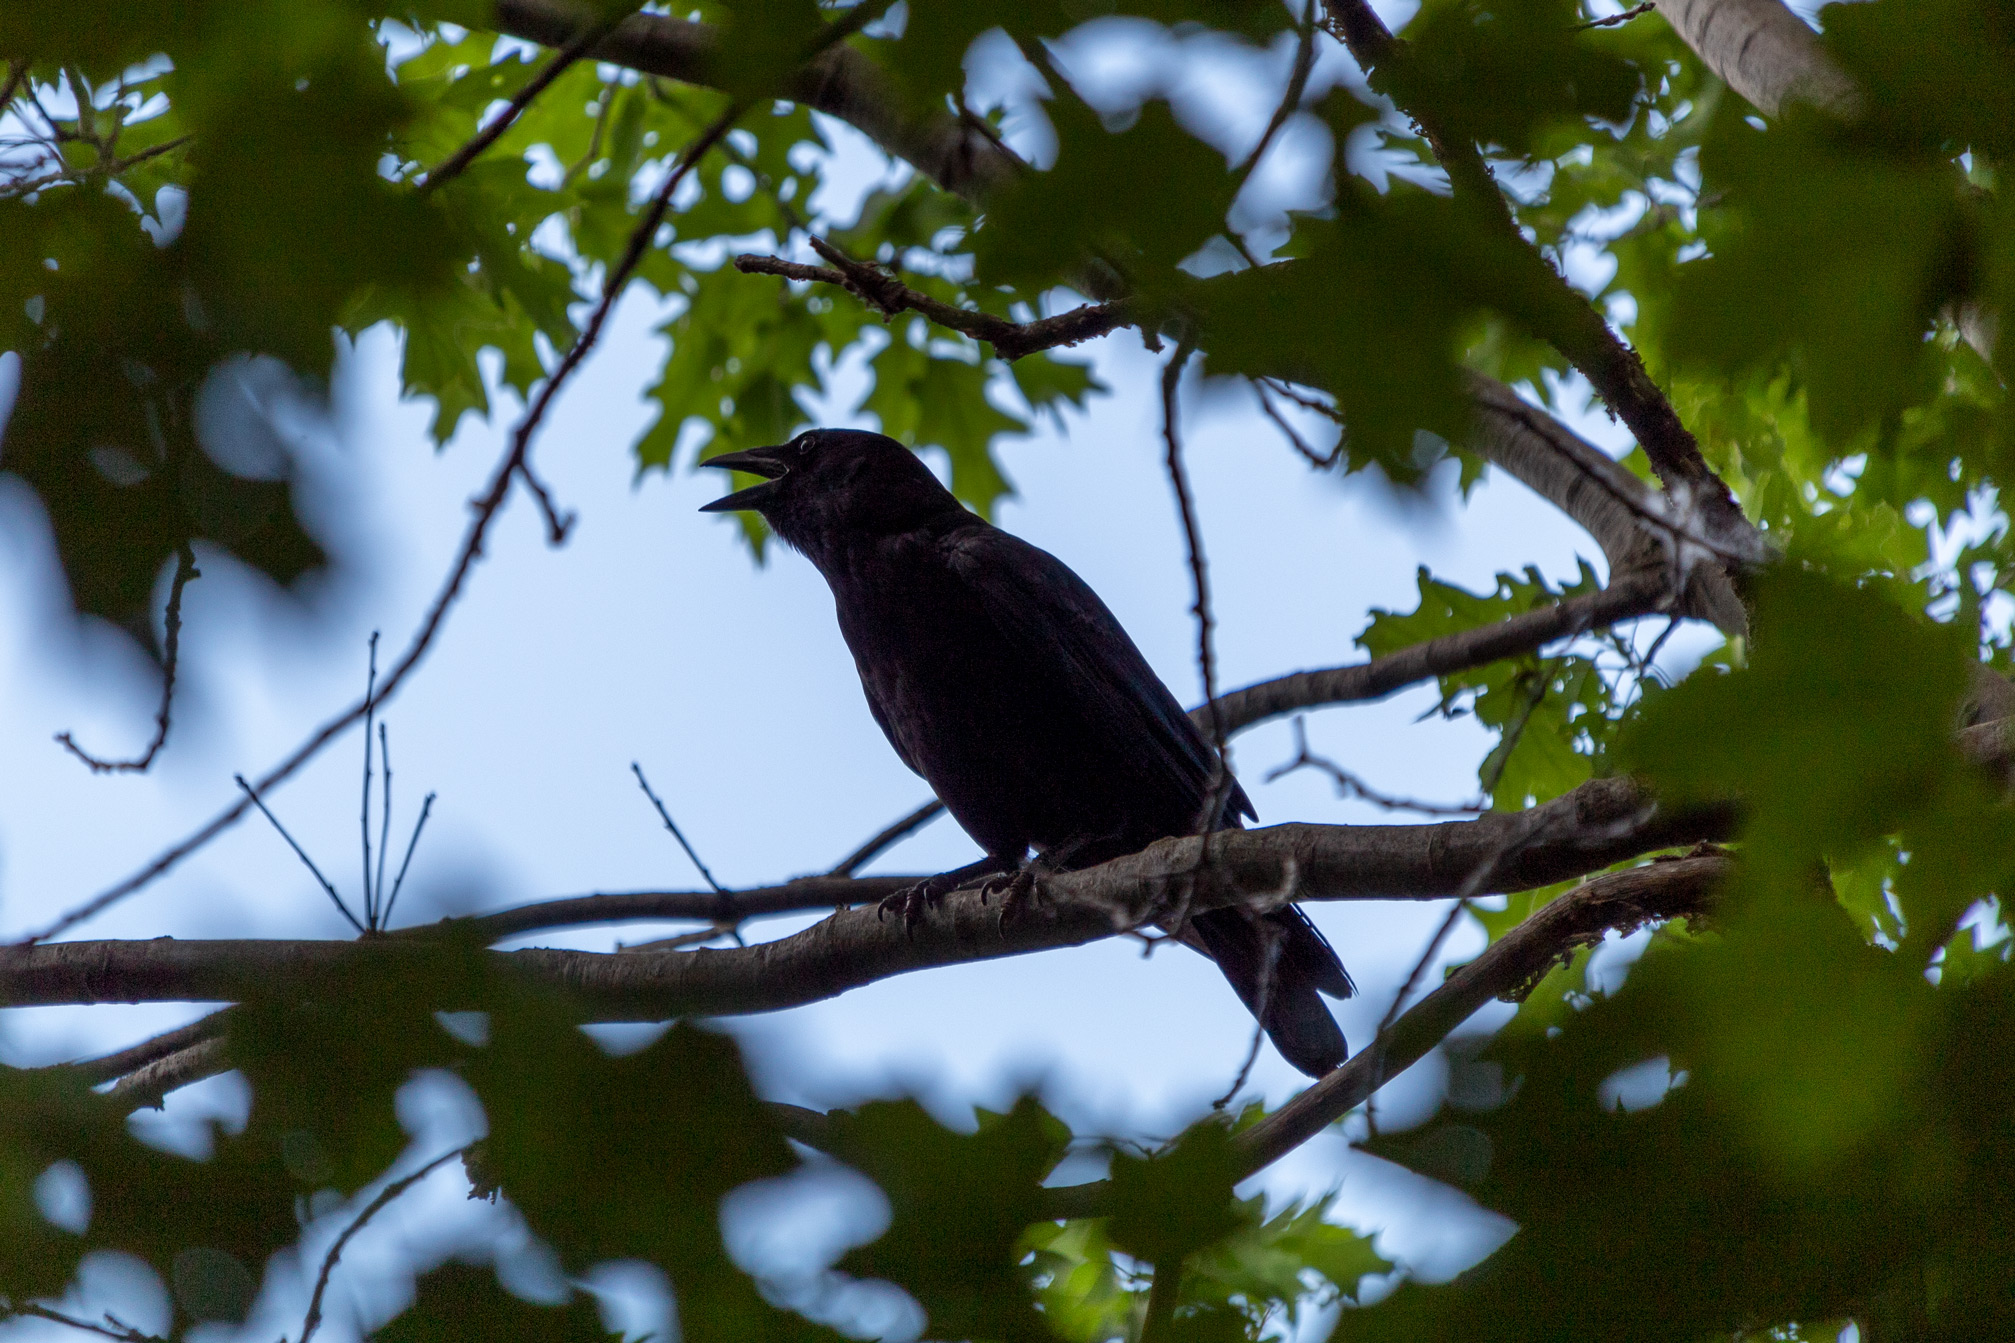 Crow cawing on a tree branch